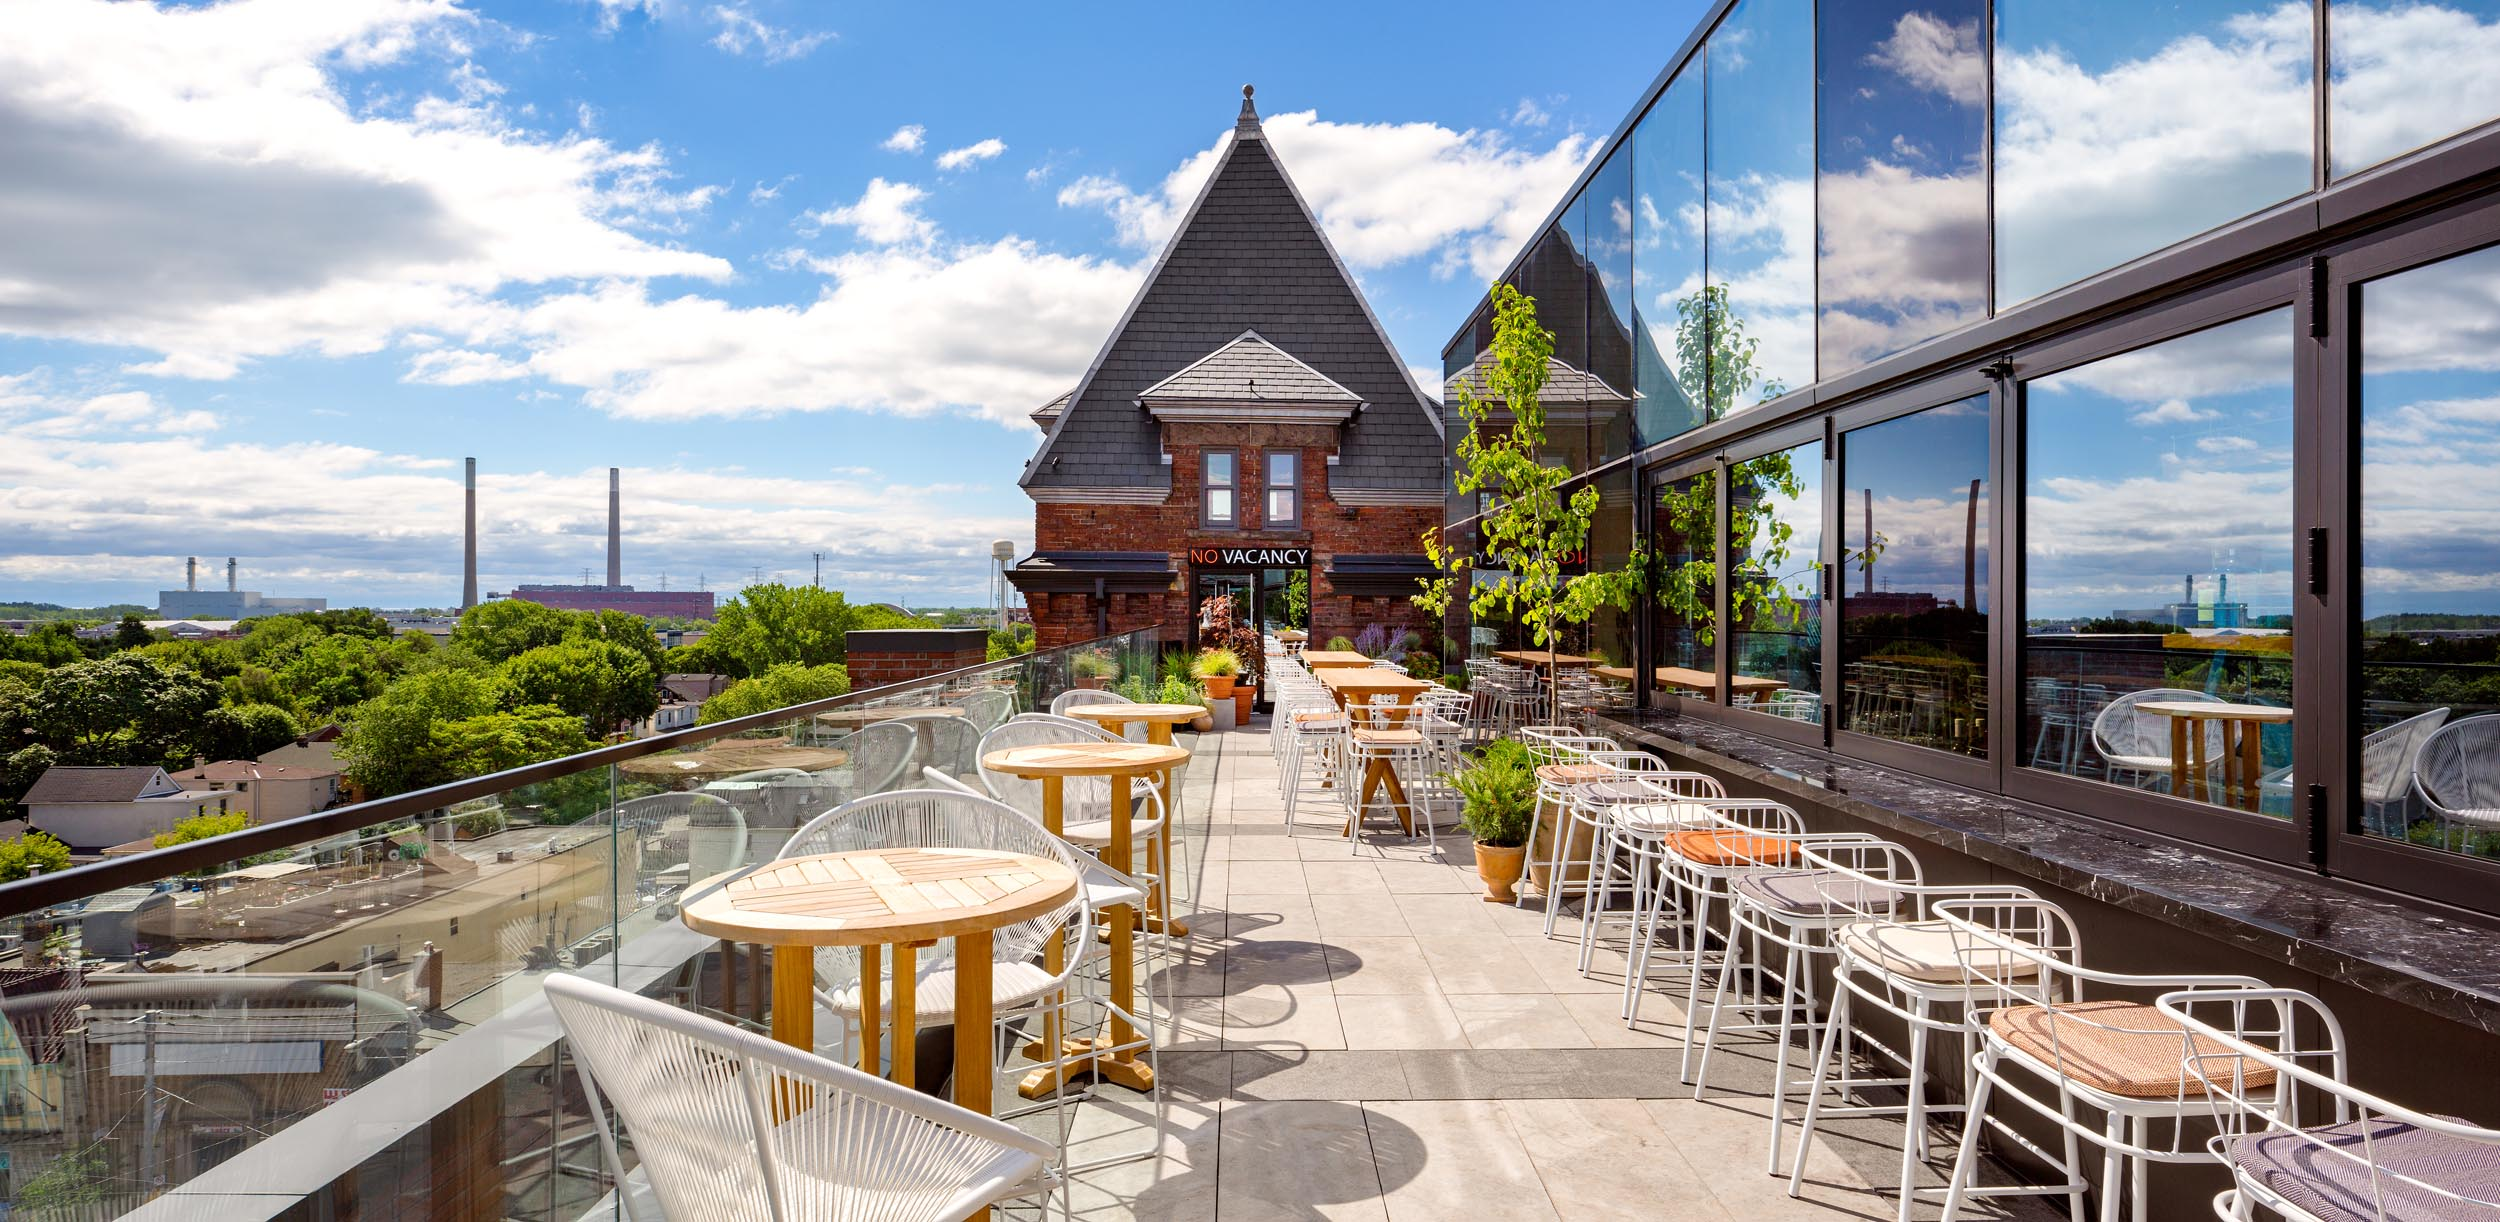 Broadview Hotel Toronto Rooftop Patio Architectural Photograph by Worker Bee Supply